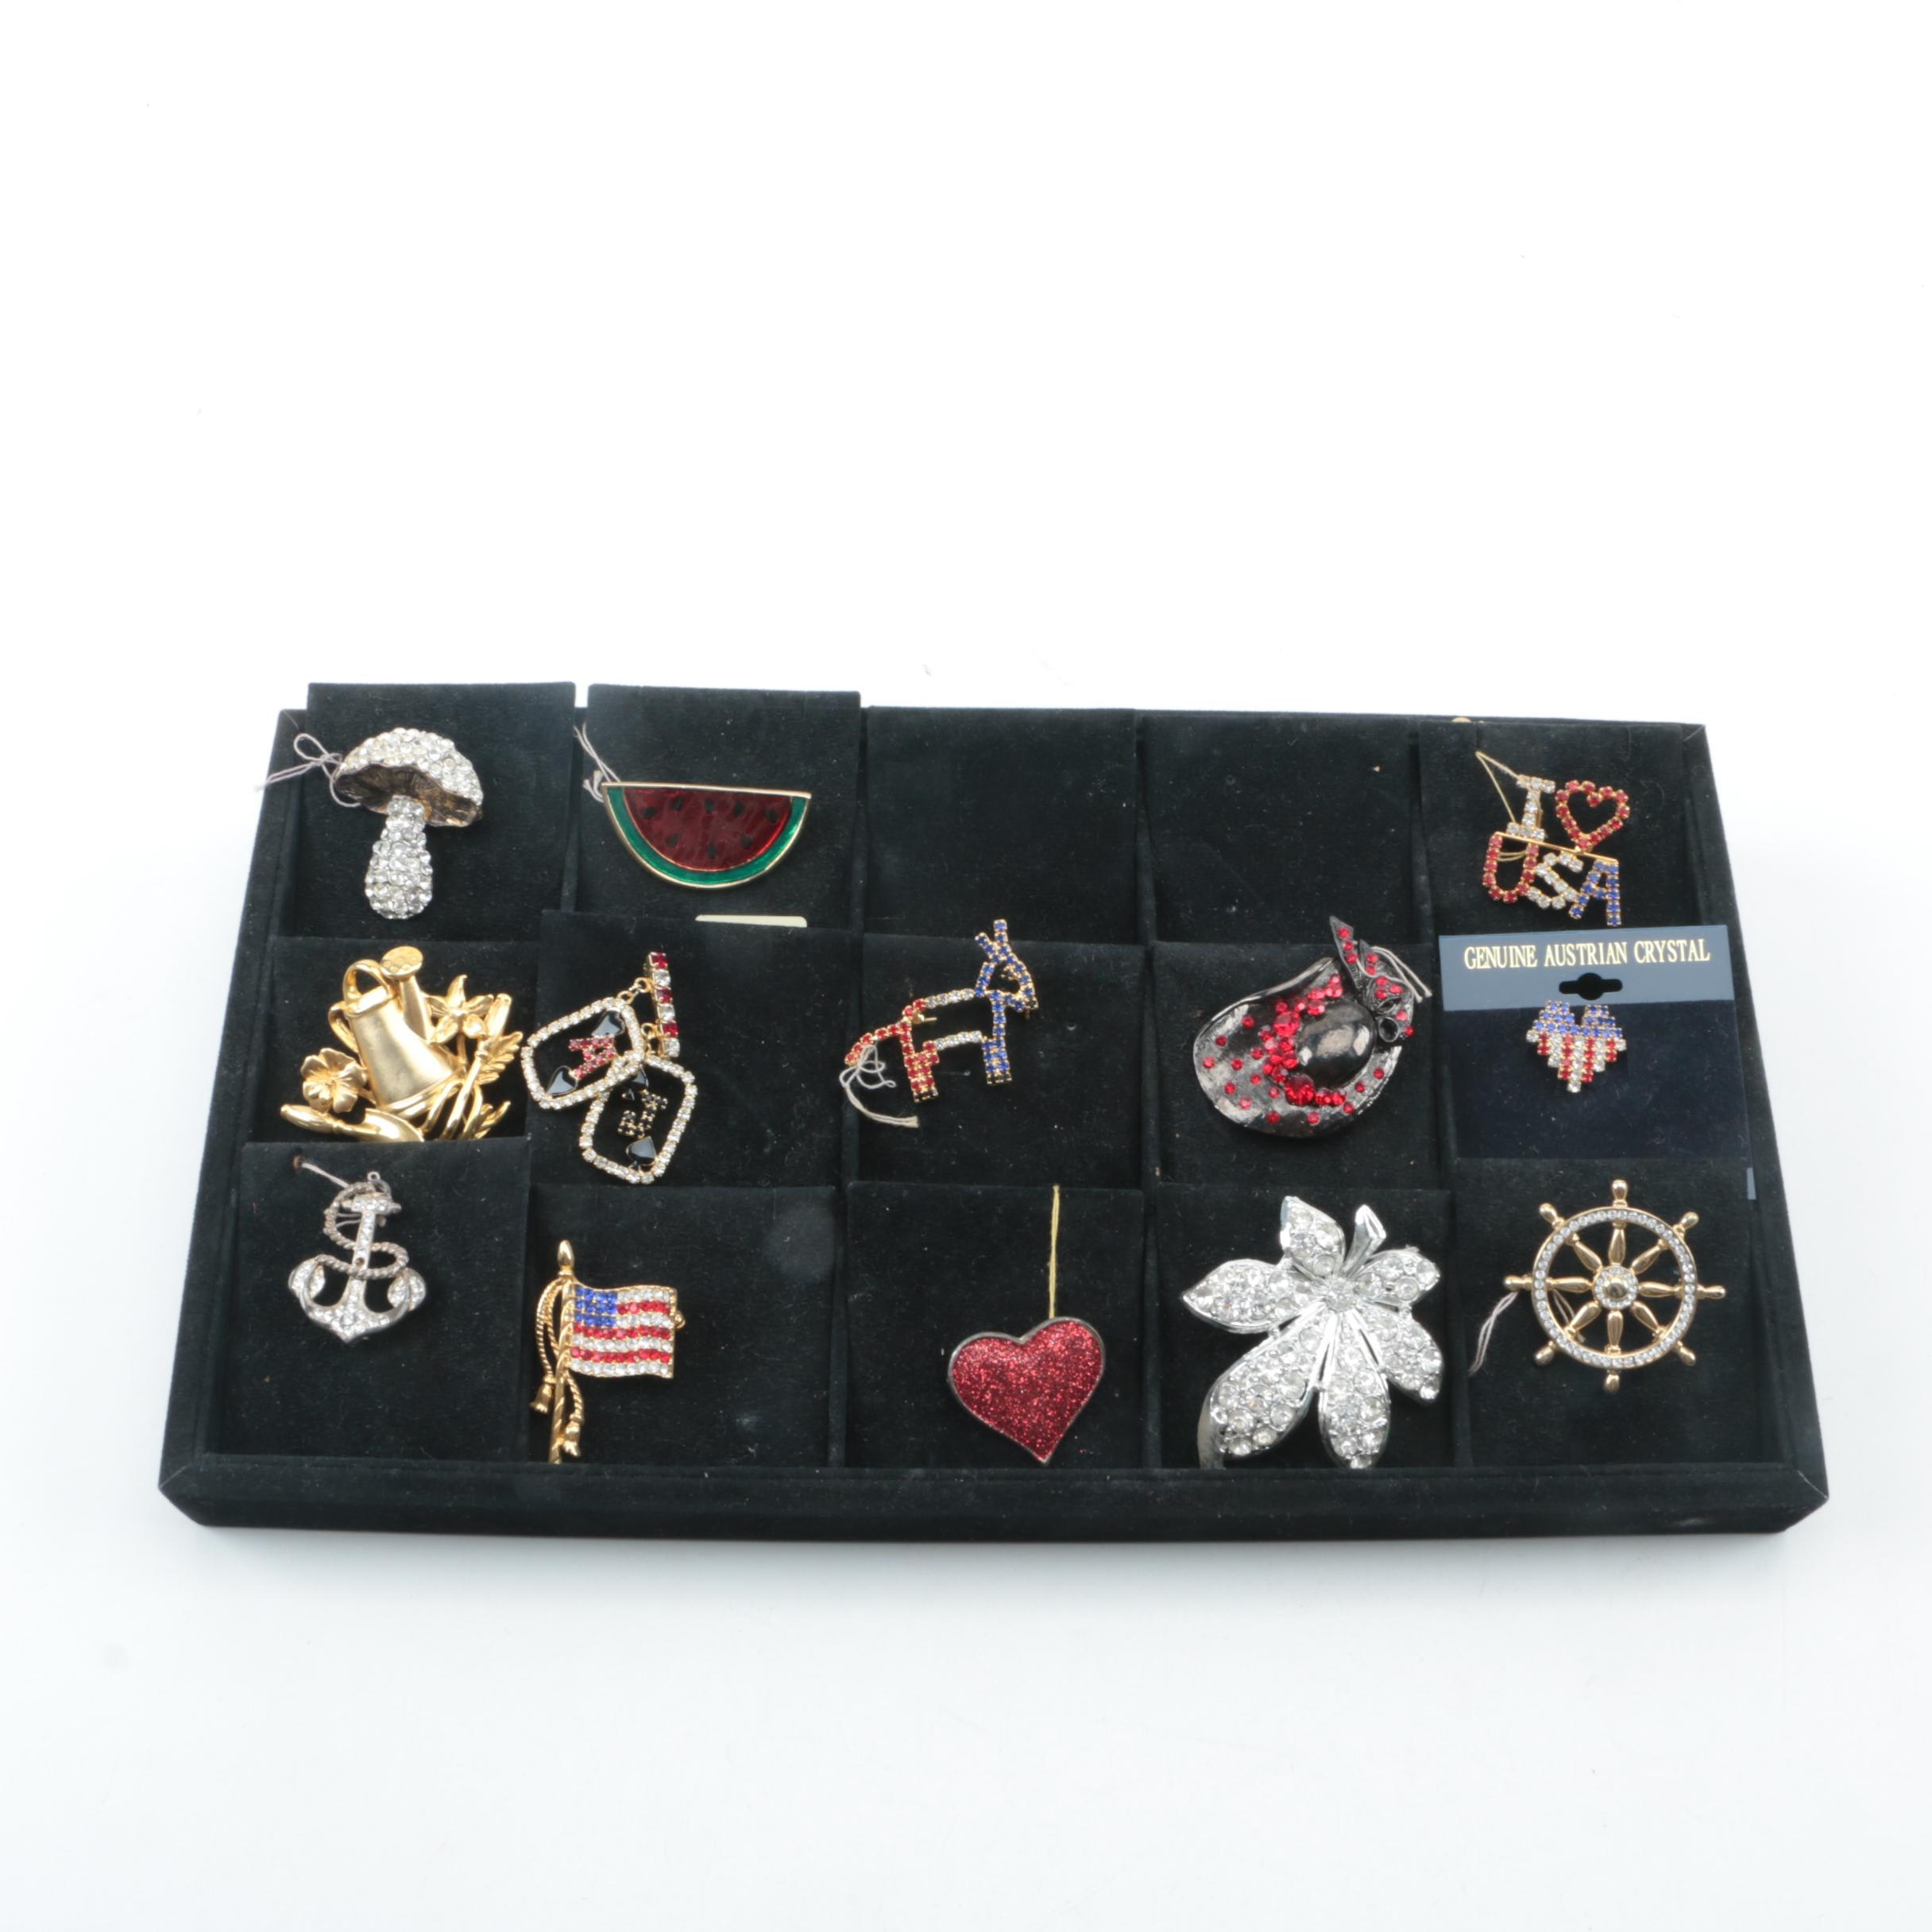 Thirteen Pins with Display Case